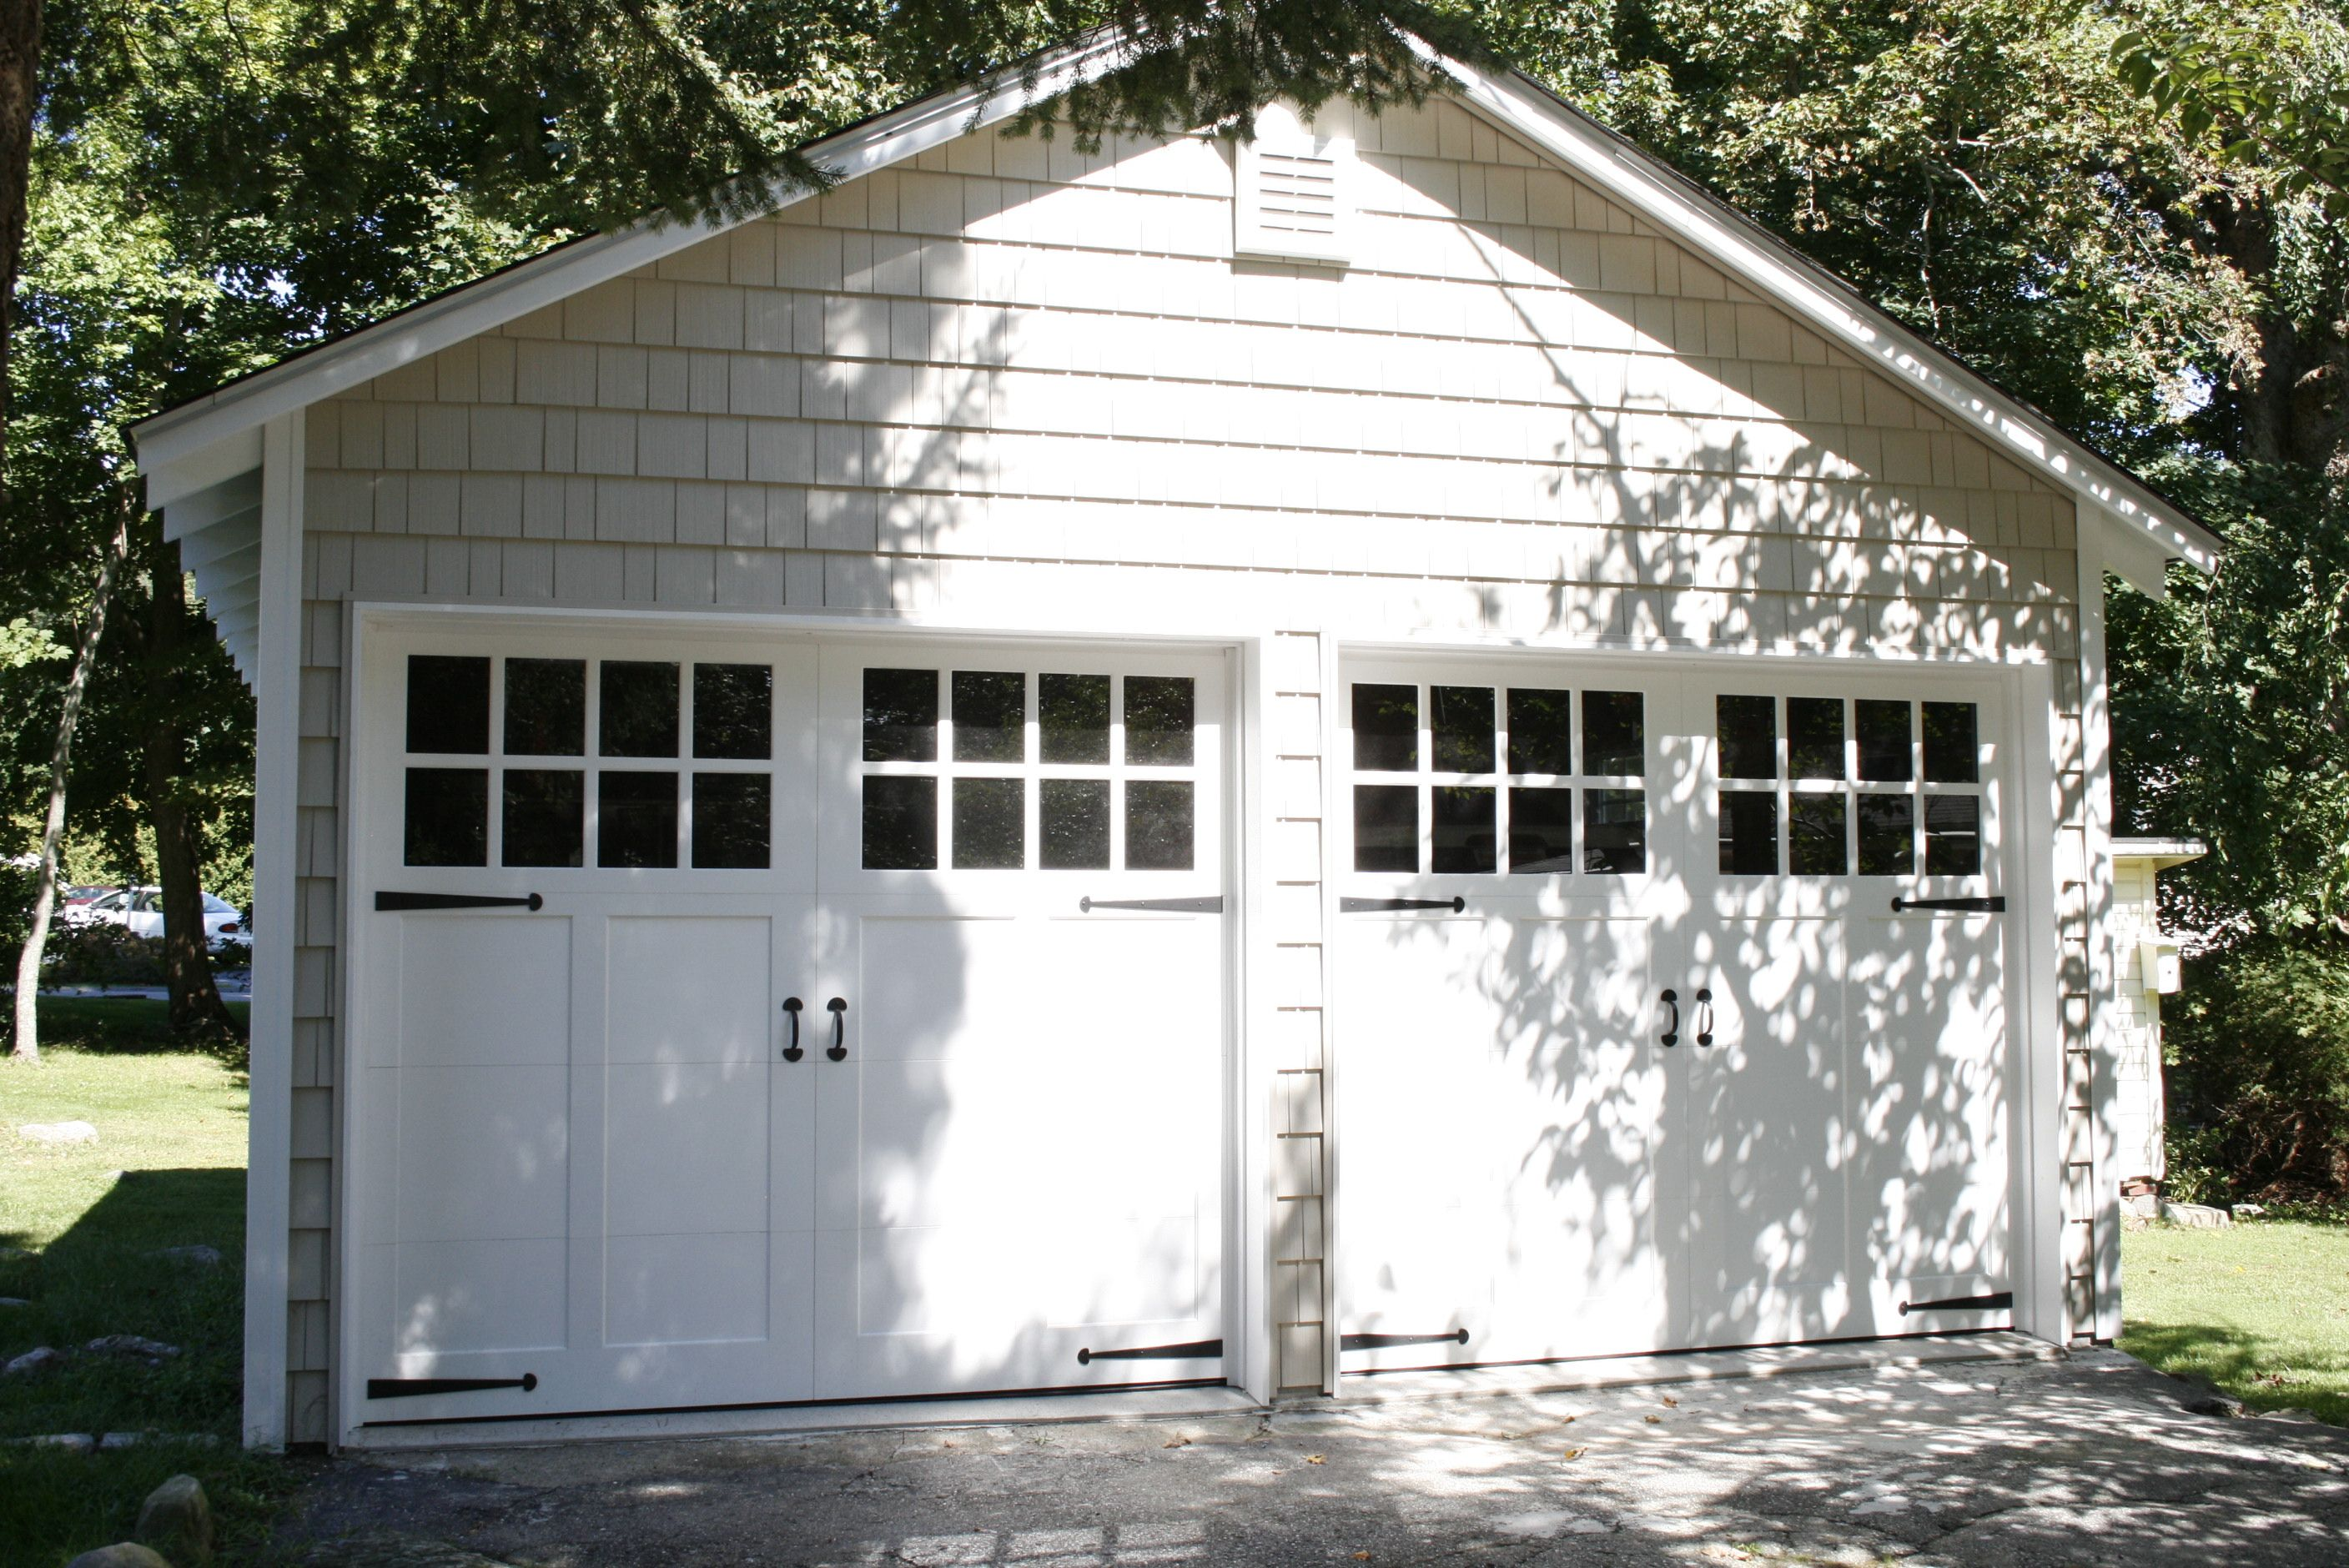 pa garage opener includes doors contemporary dalton philly vinyl that sales house steel wayne installation classic wood and aluminum style carriage fiberglass designer repair